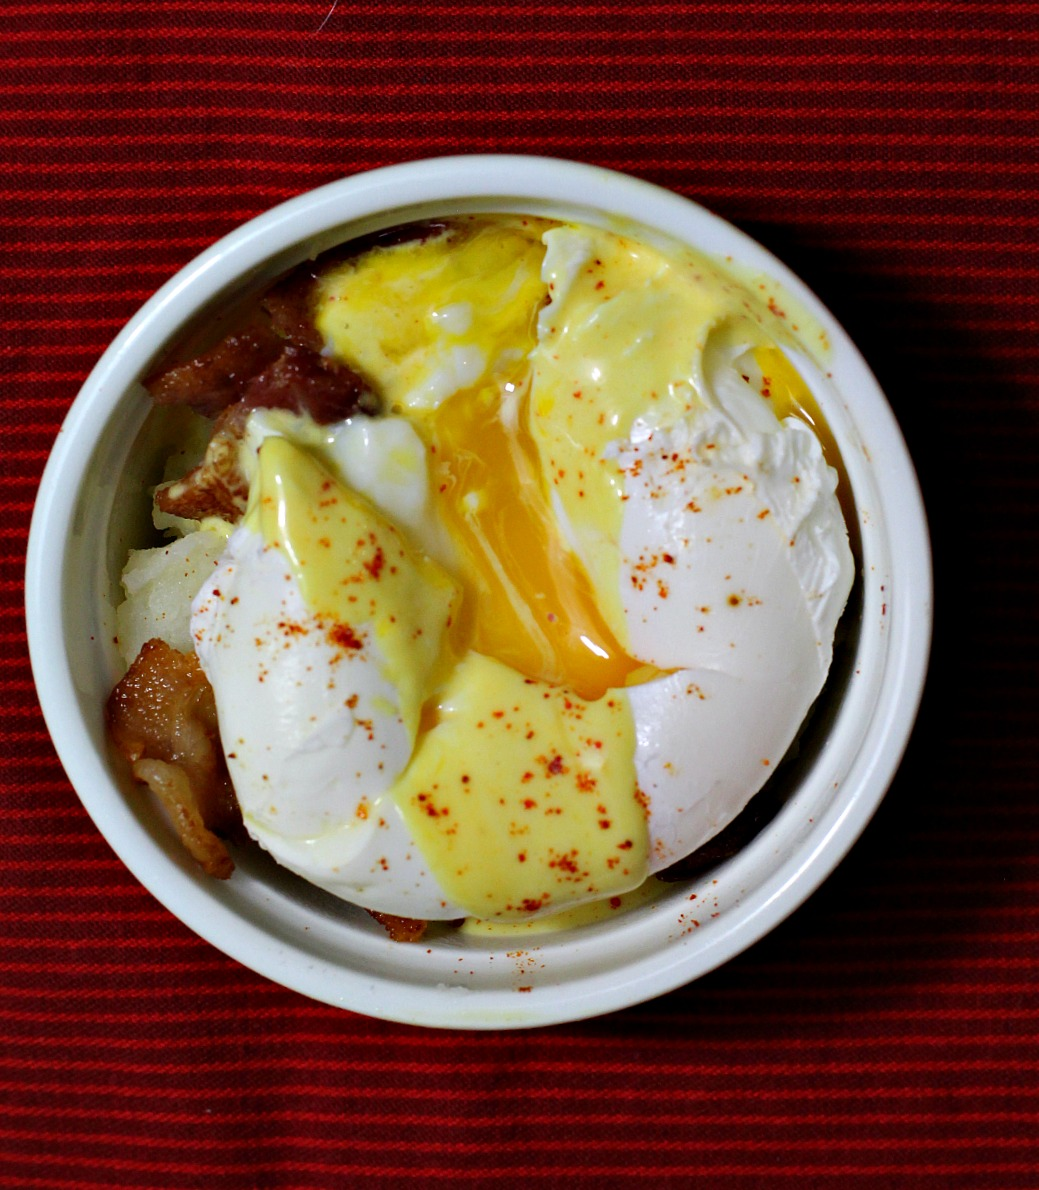 Mashed potatoes ramekins with bacon and poached eggs.